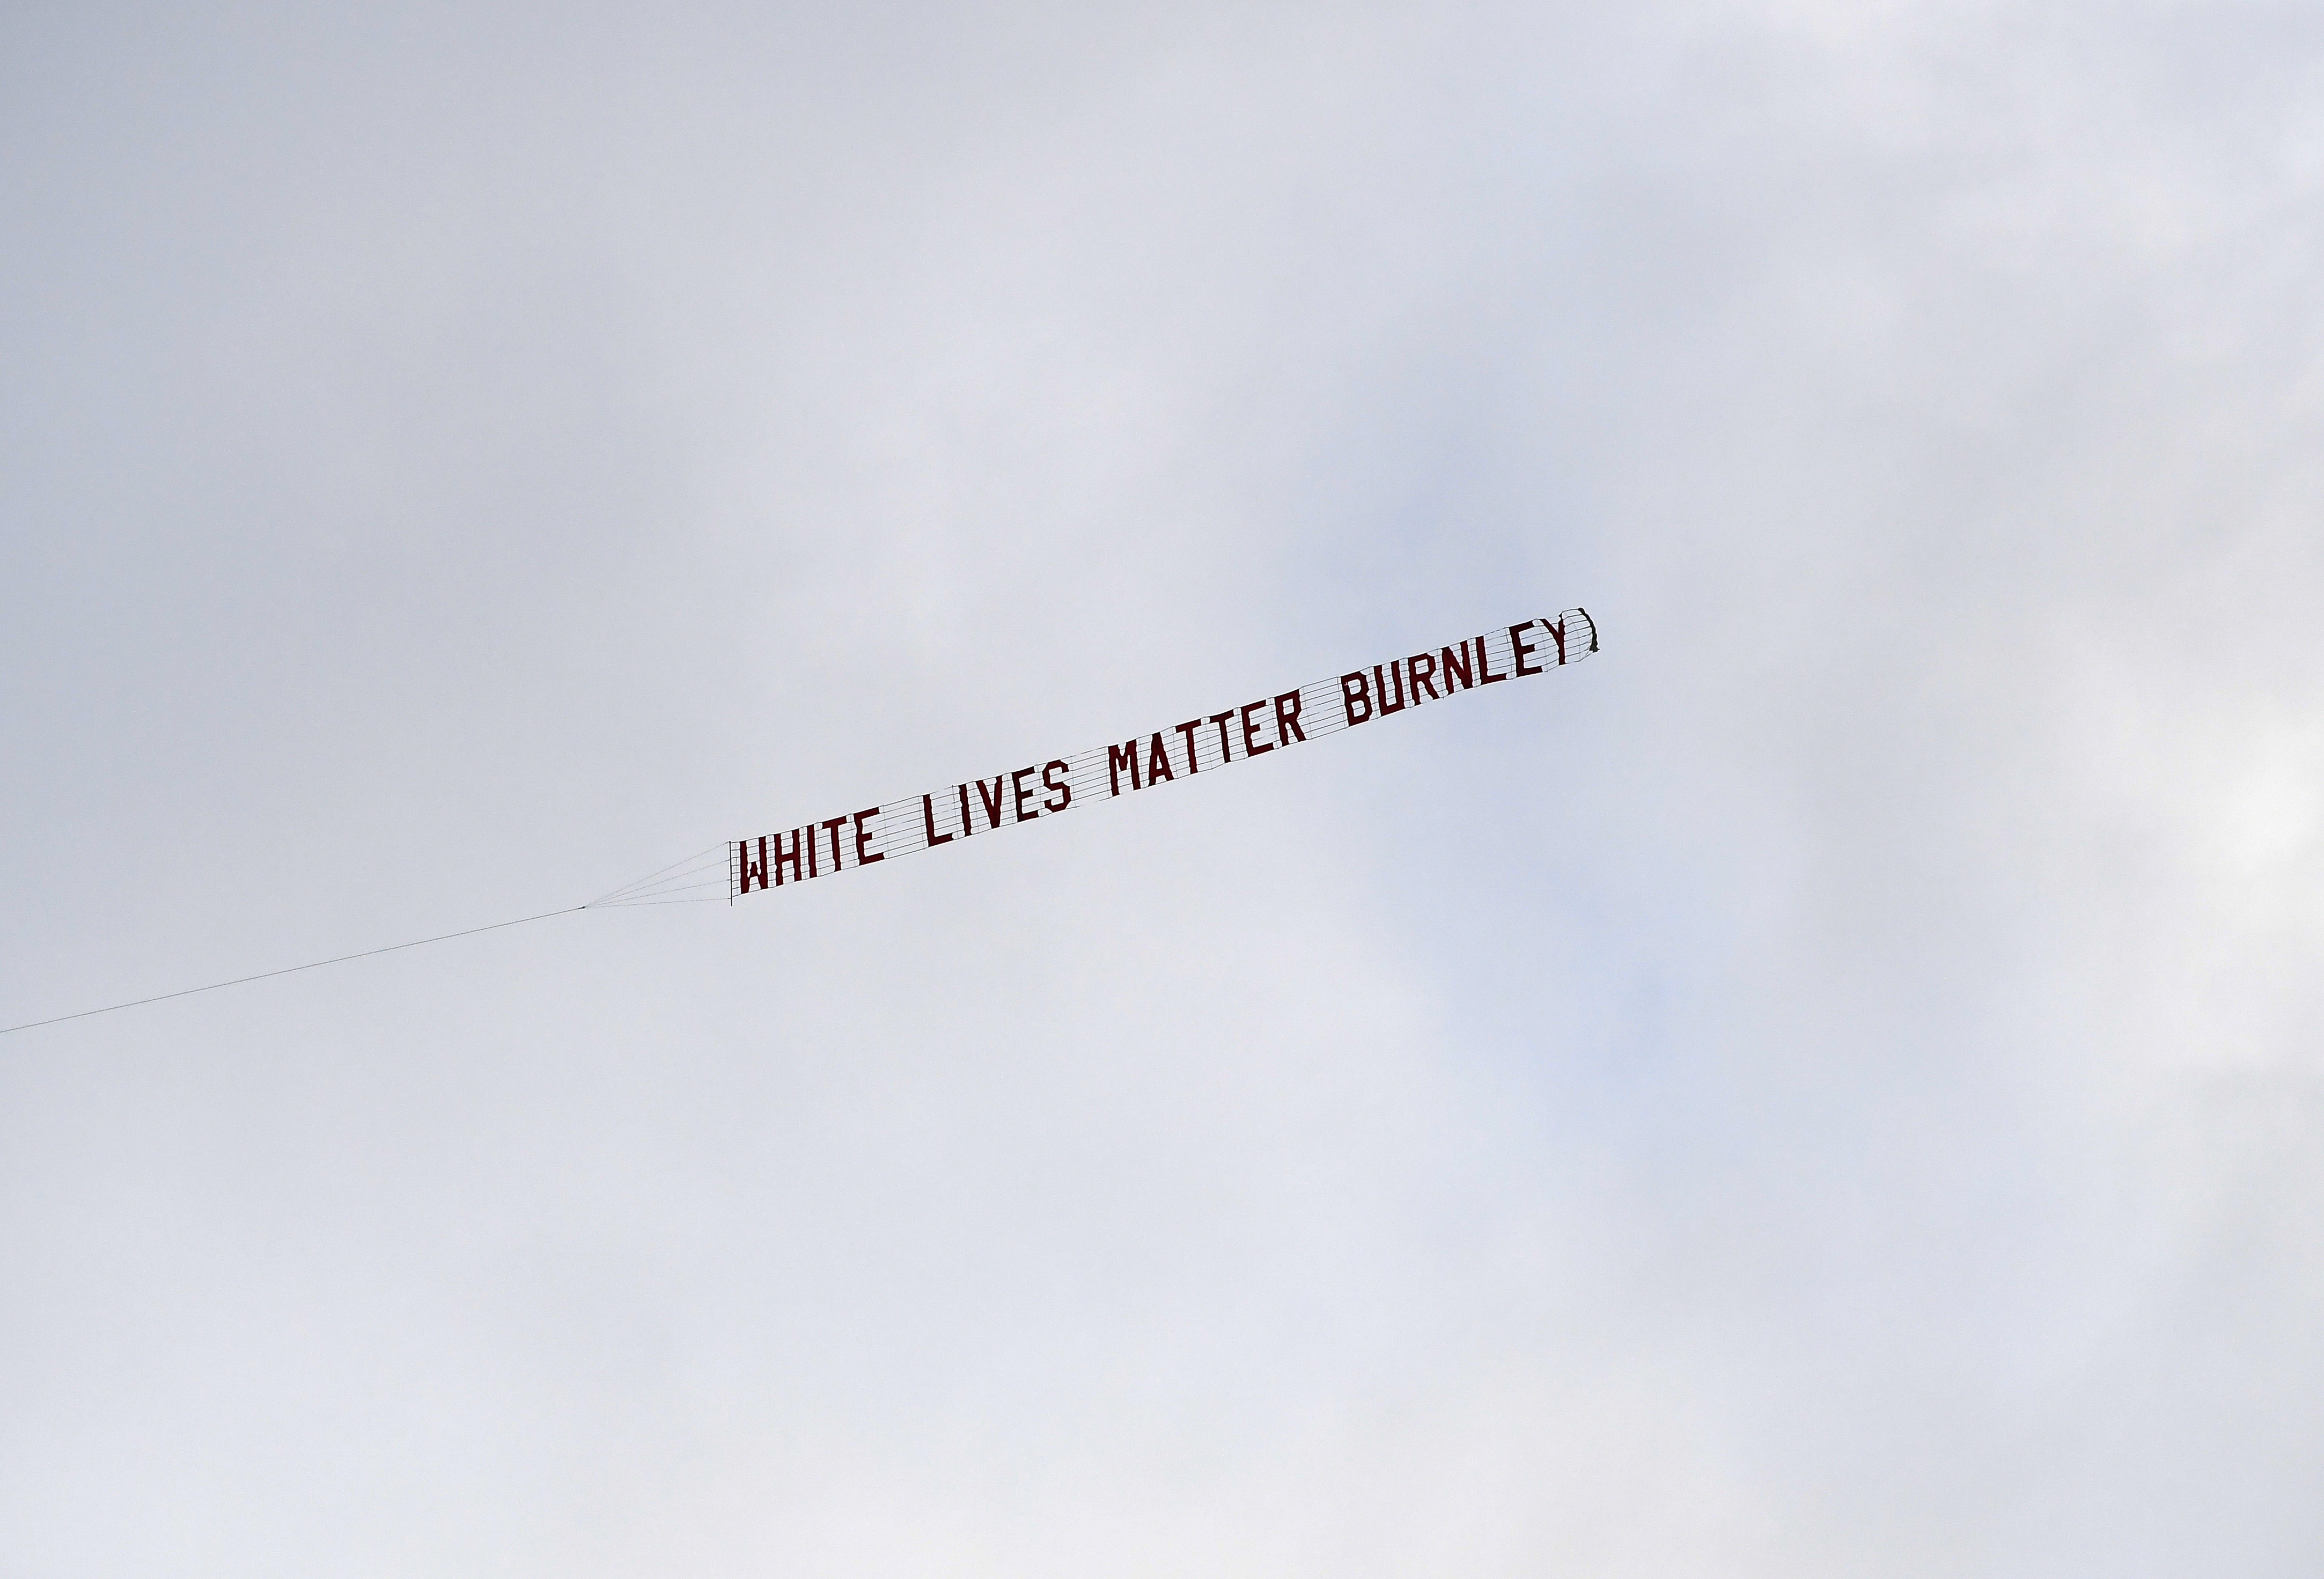 who flew the white lives matter banner